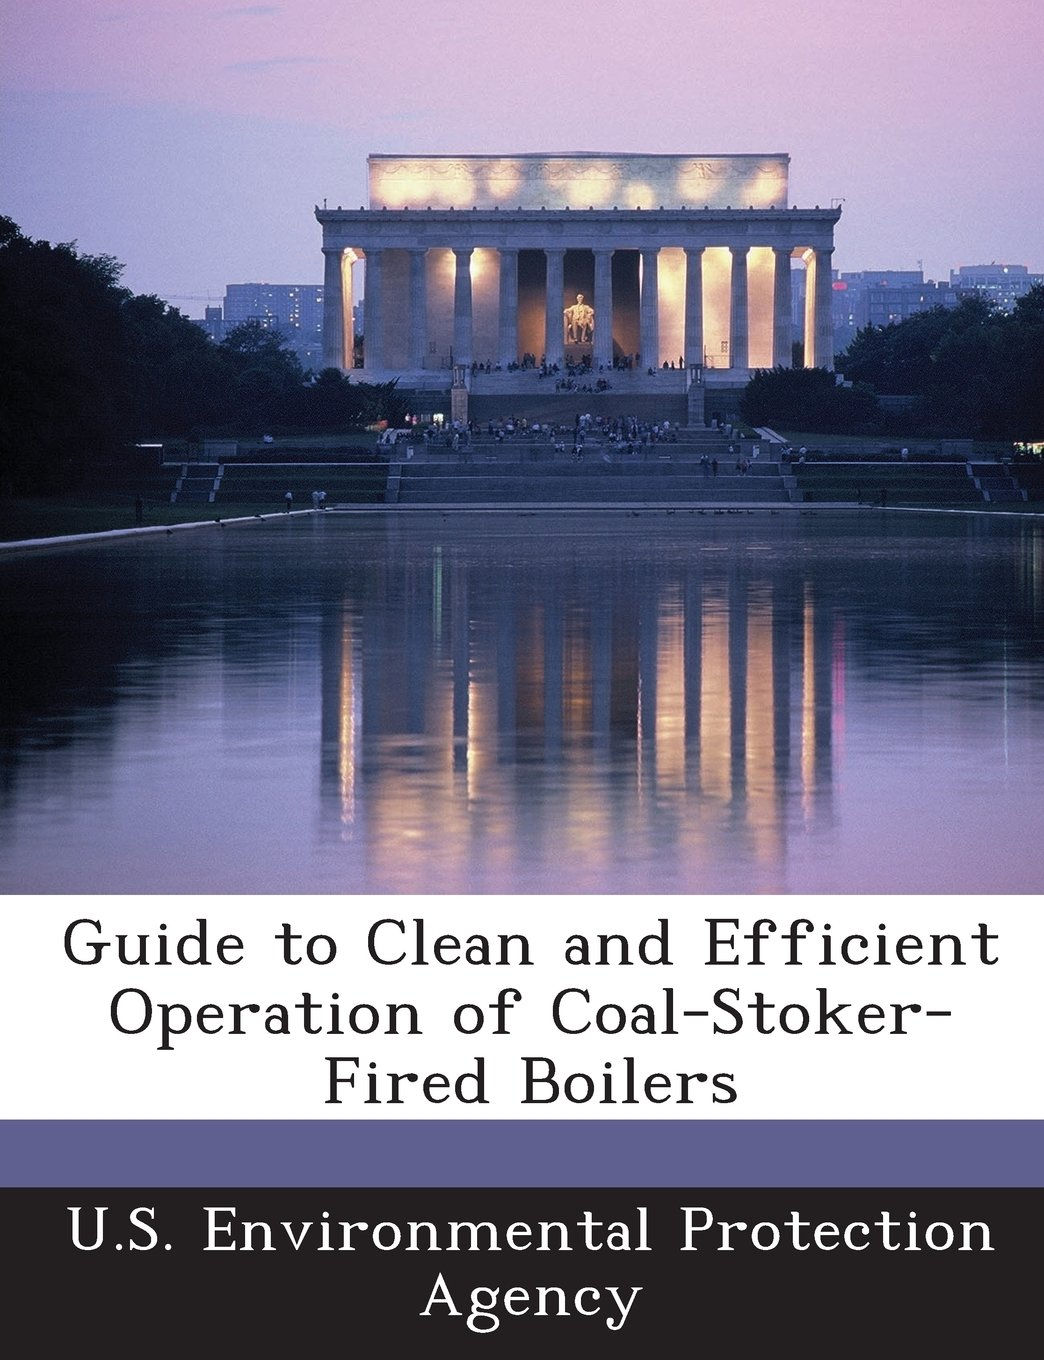 Guide to Clean and Efficient Operation of Coal-Stoker-Fired Boilers PDF